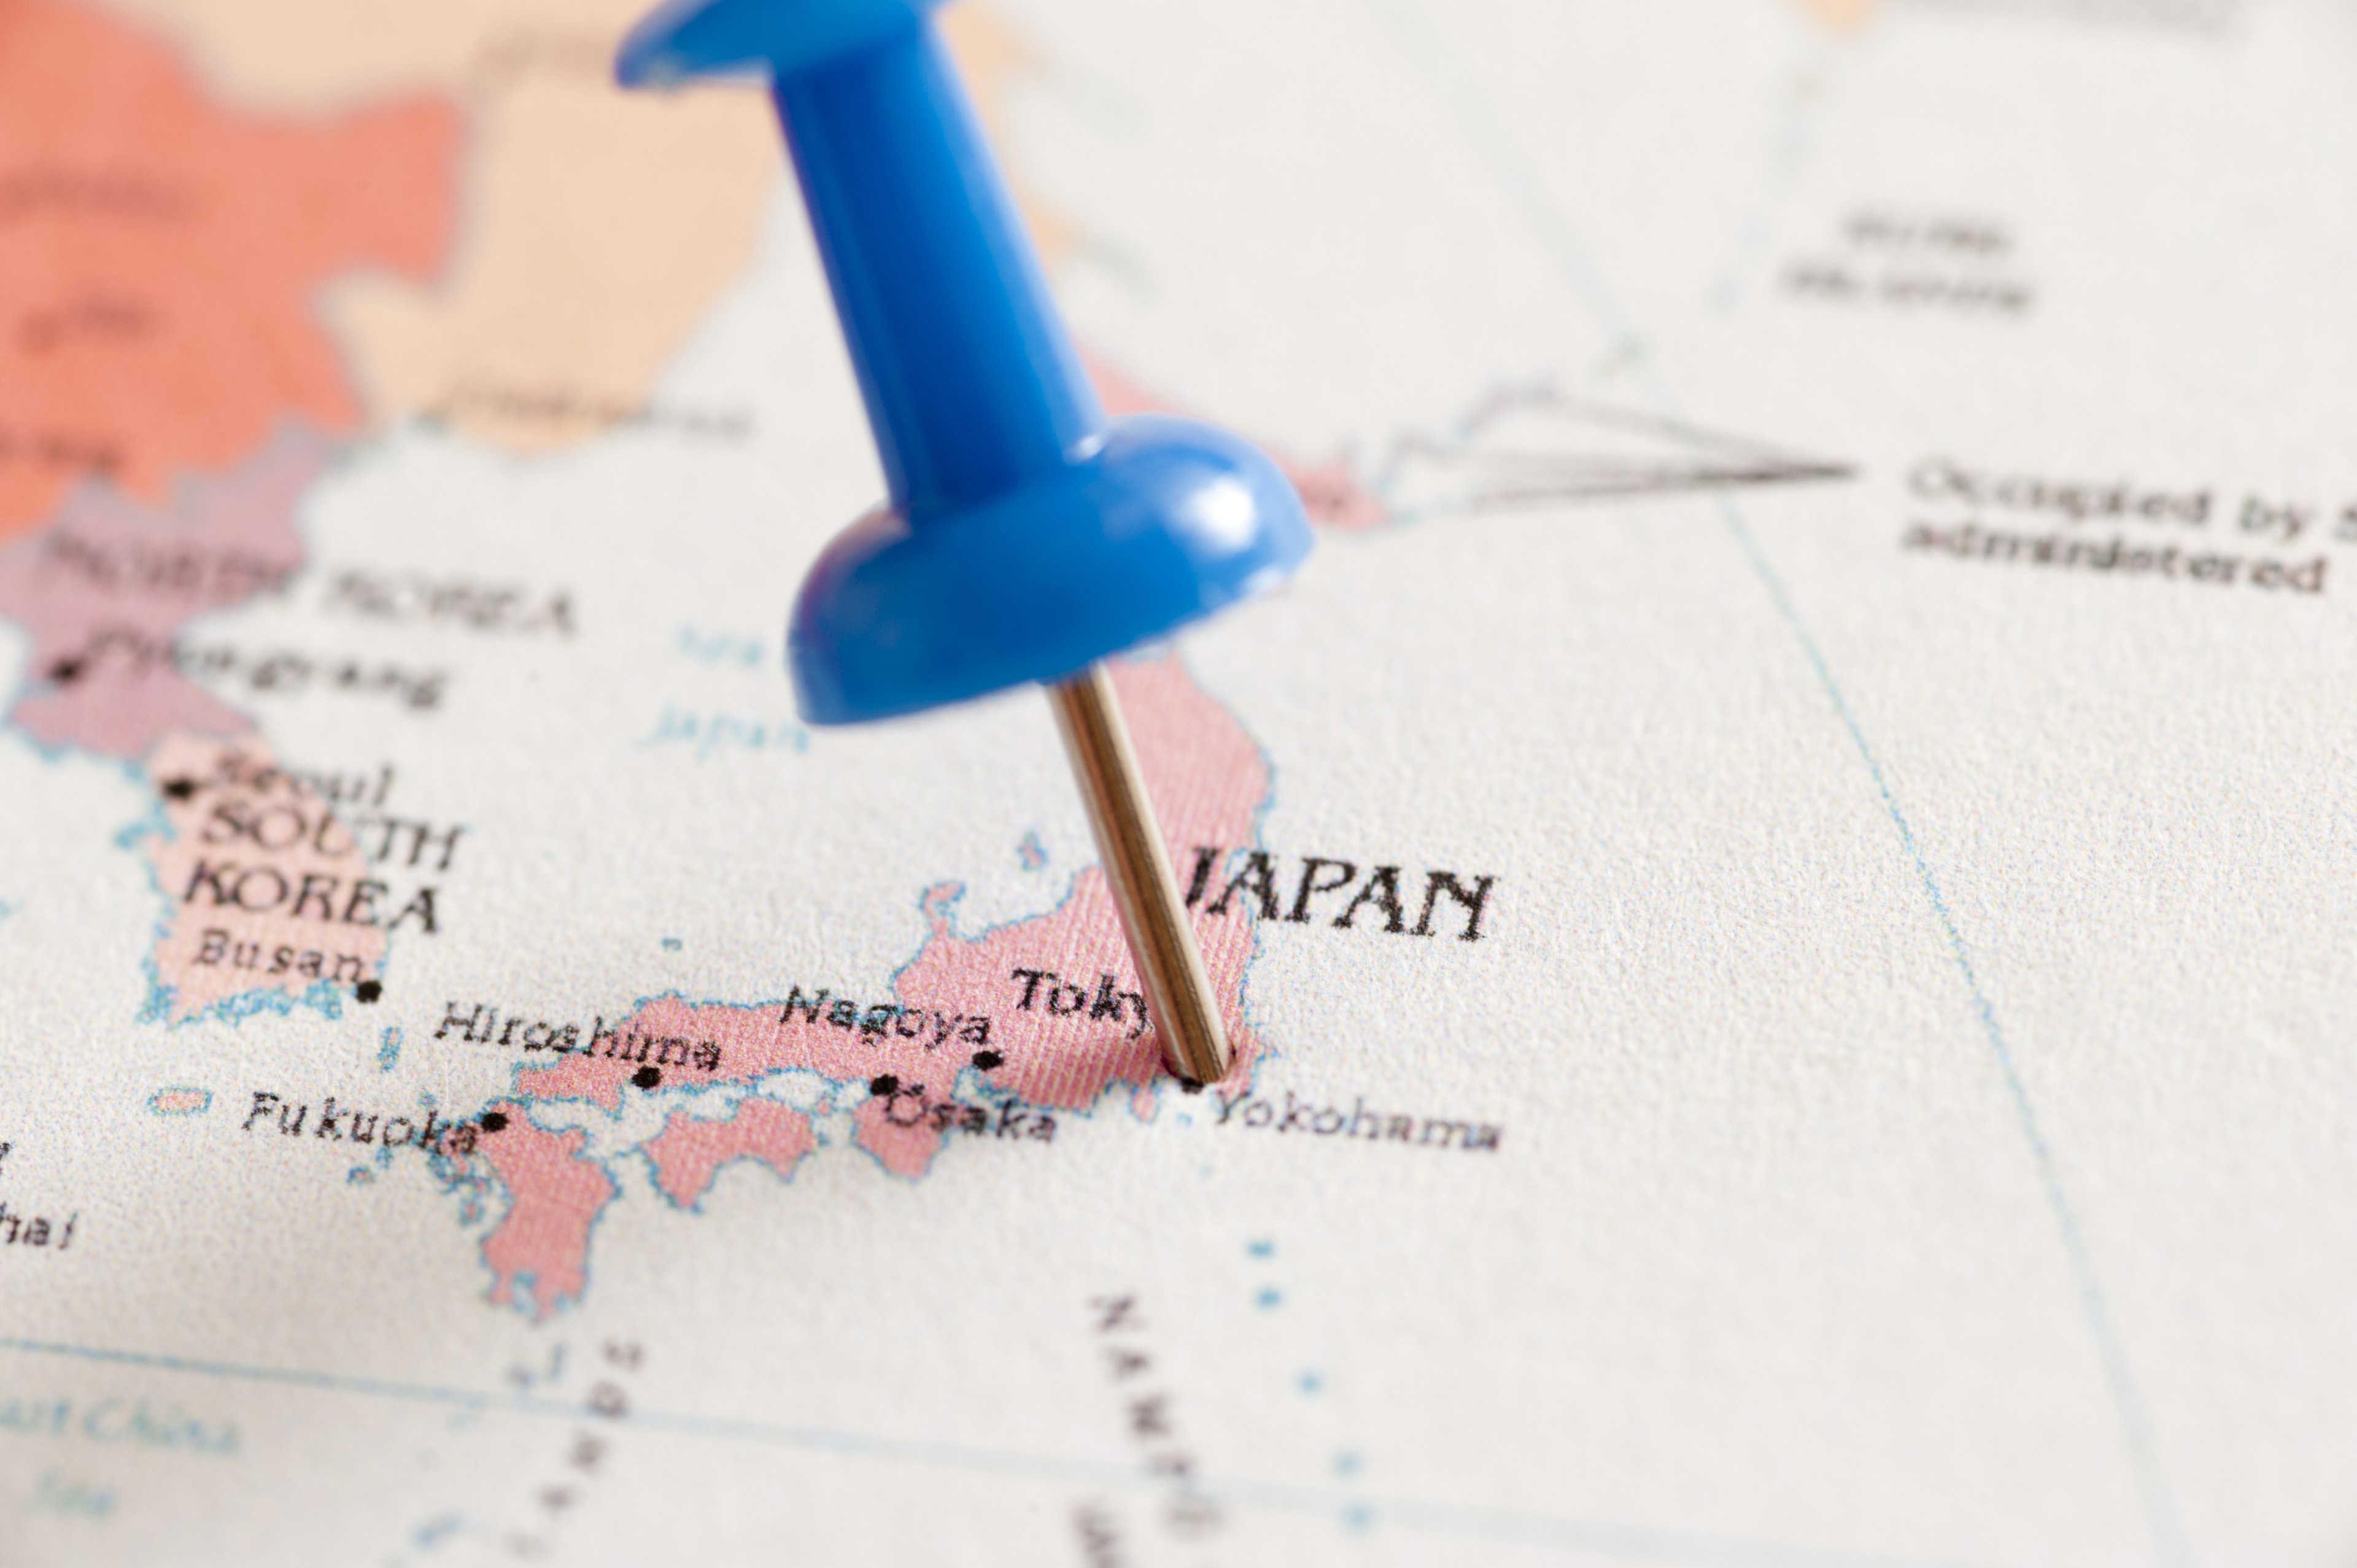 Close Up of Blue Pin Inserted into Map of Japan Pin Pointing Location of Tokyo